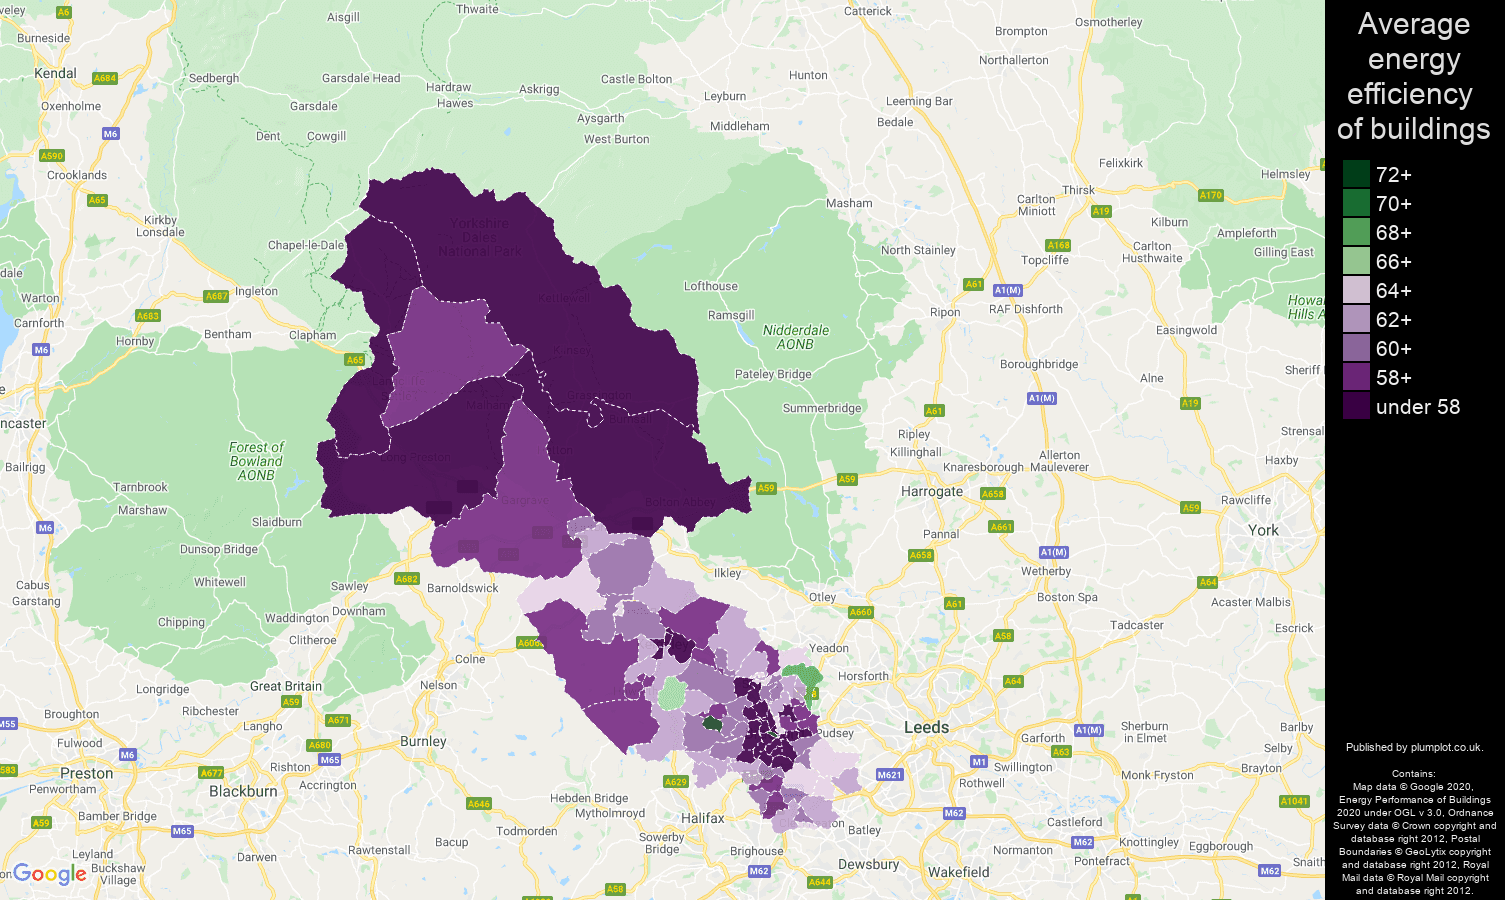 Bradford map of energy efficiency of houses